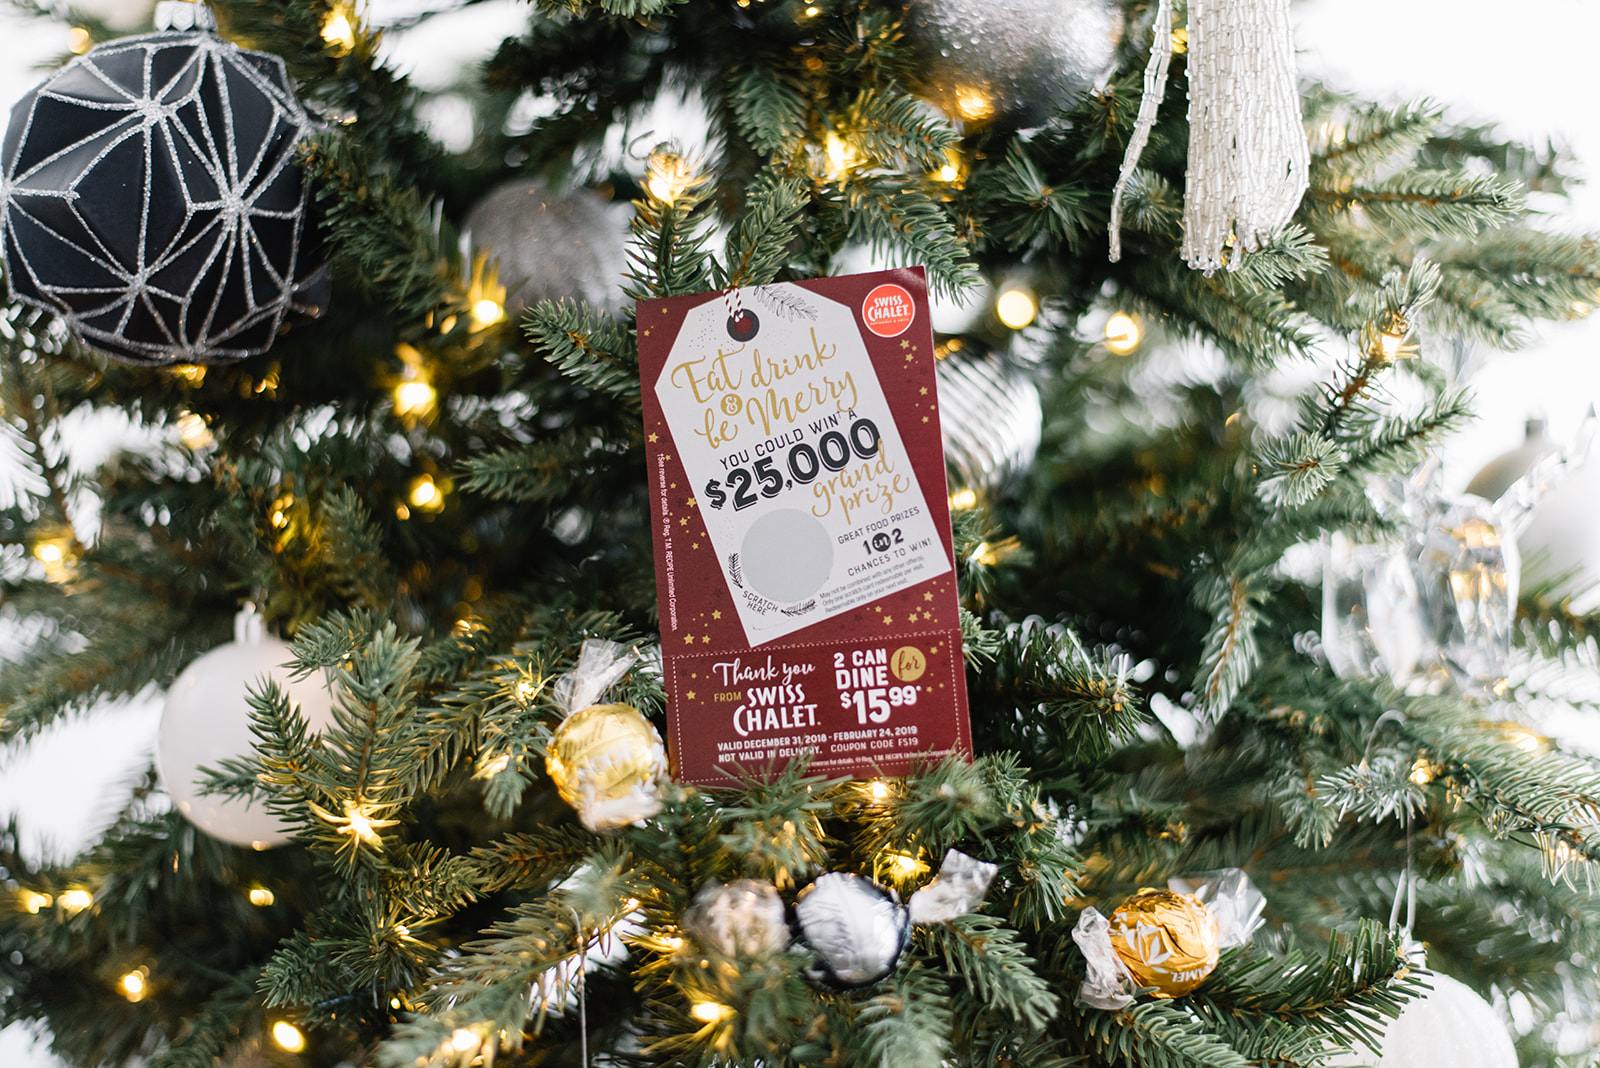 holiday festive special from swiss chalet